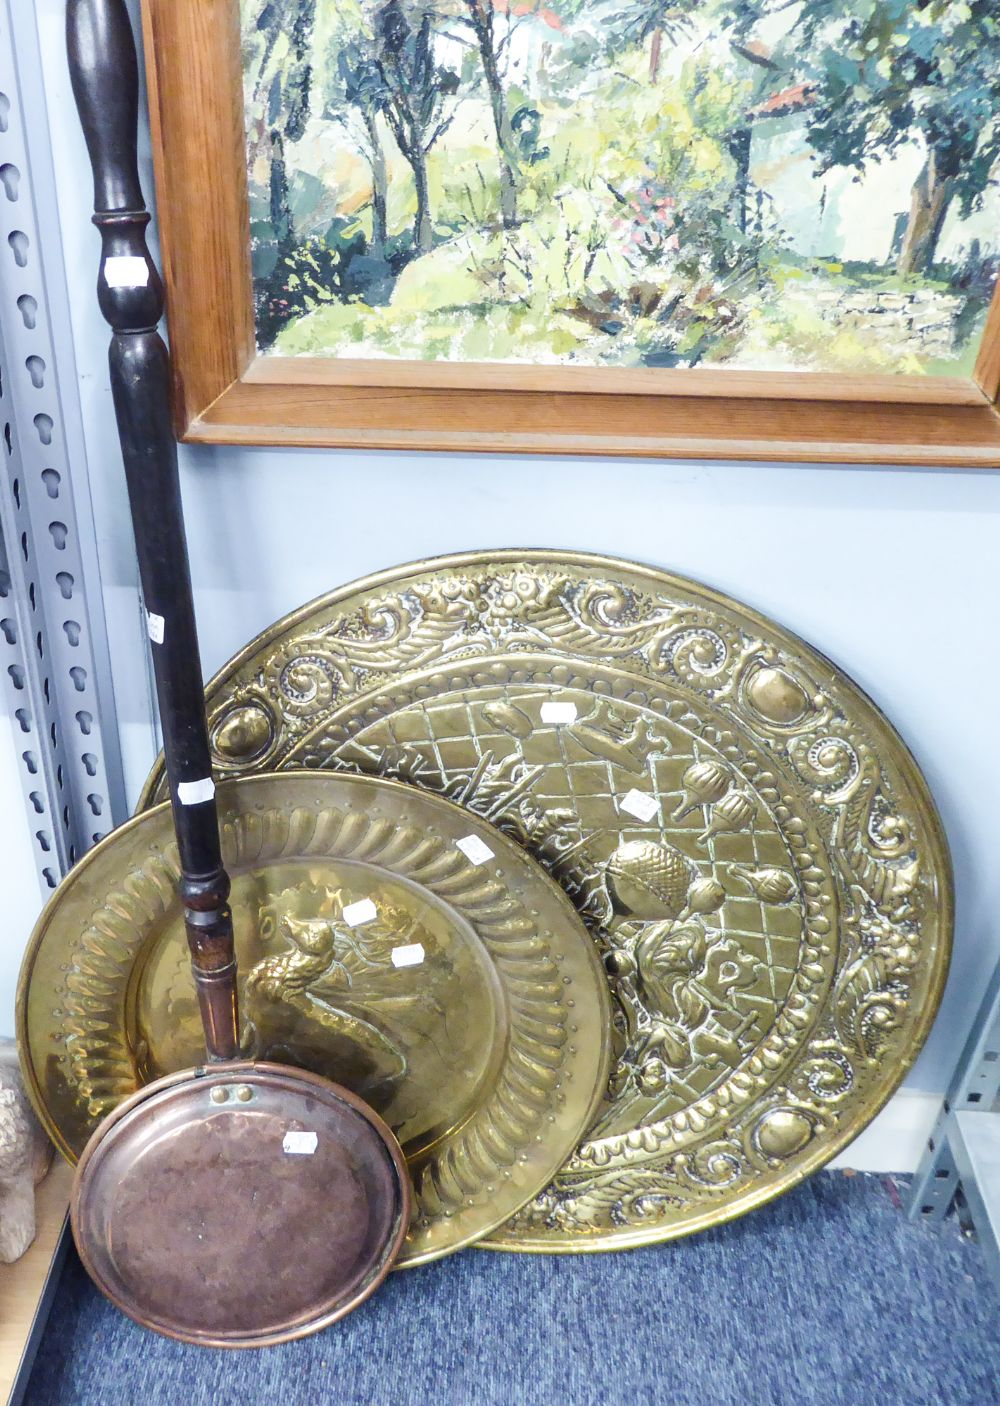 Lot 330 - VICTORIAN COPPER BED WARMING PAN WITH TURNED WOOD HANDLE, EMBOSSED BRASS PLAQUE CENTRED WITH A